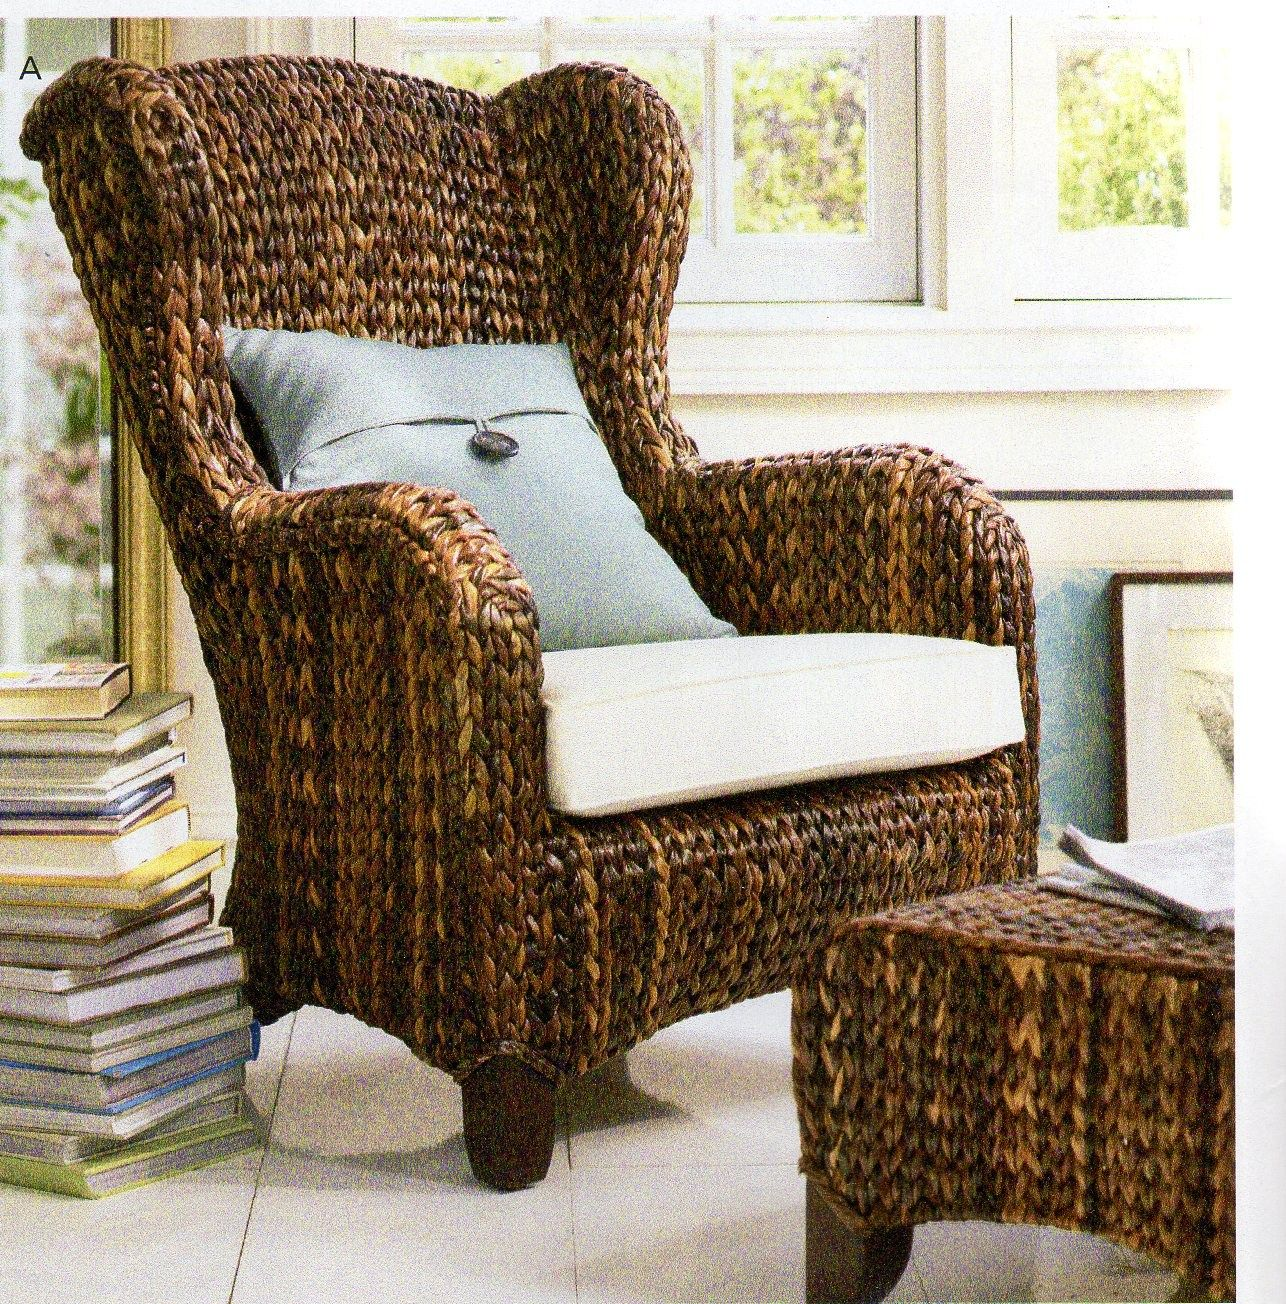 diy wicker chair cushions bedroom on sale pottery barn faqs awesome frunture collection